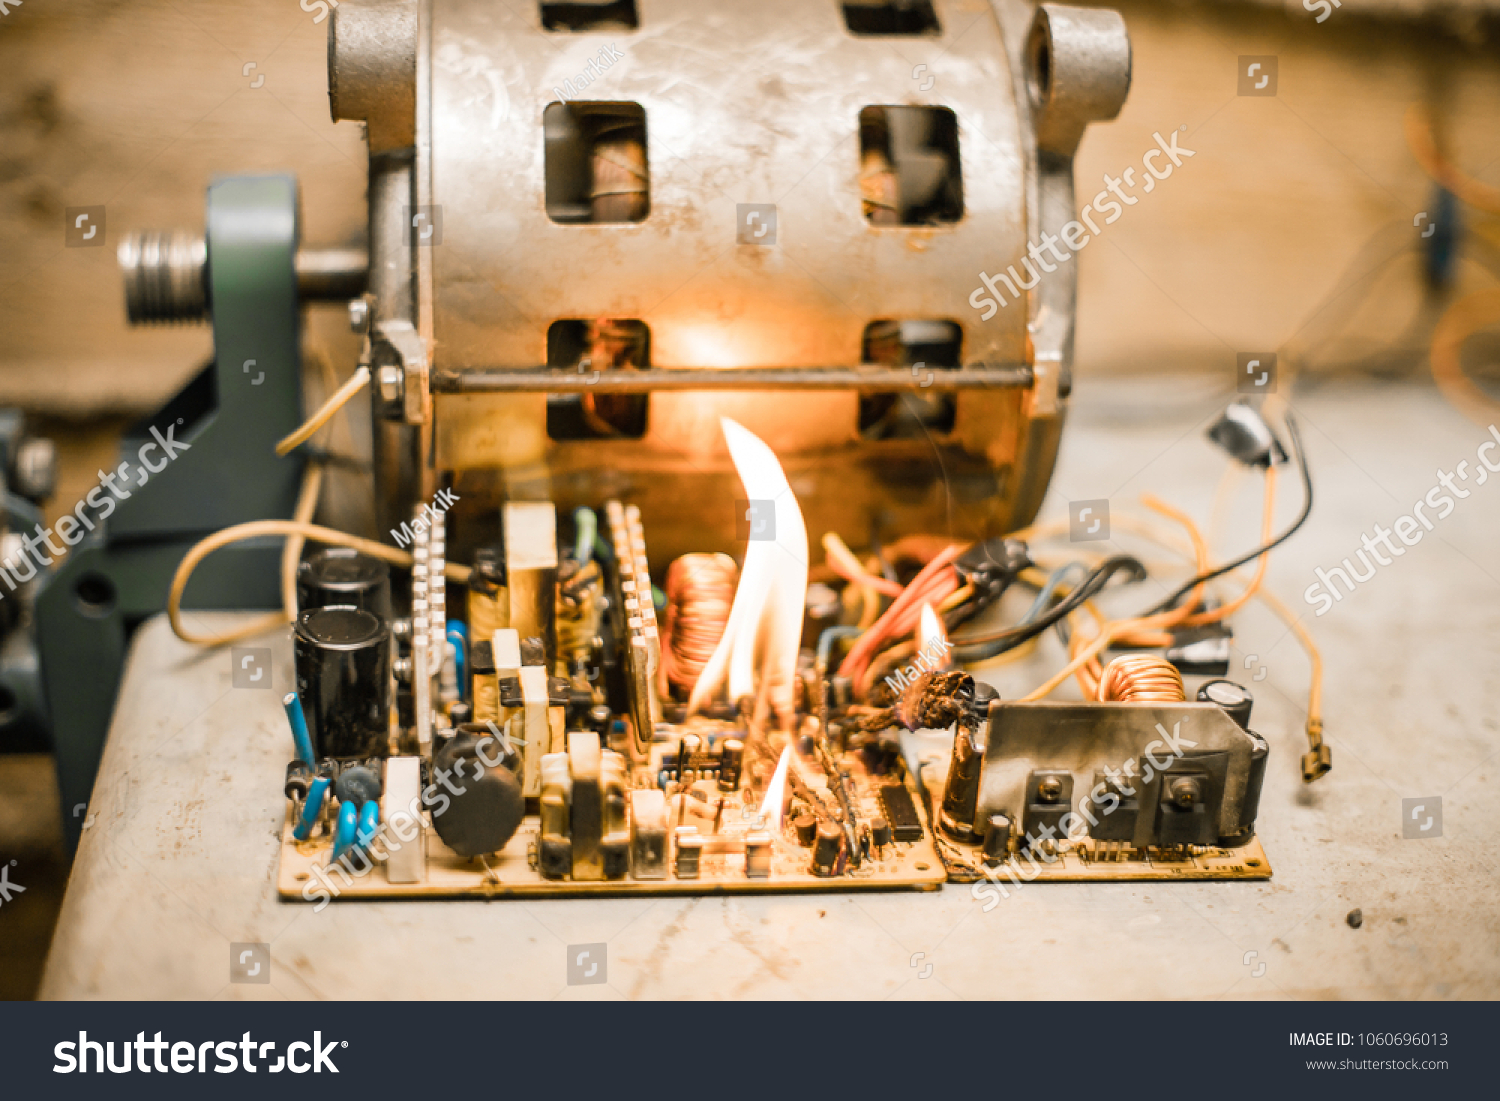 hight resolution of short circuit burned cable fire wiring bad cable electric appliance broken